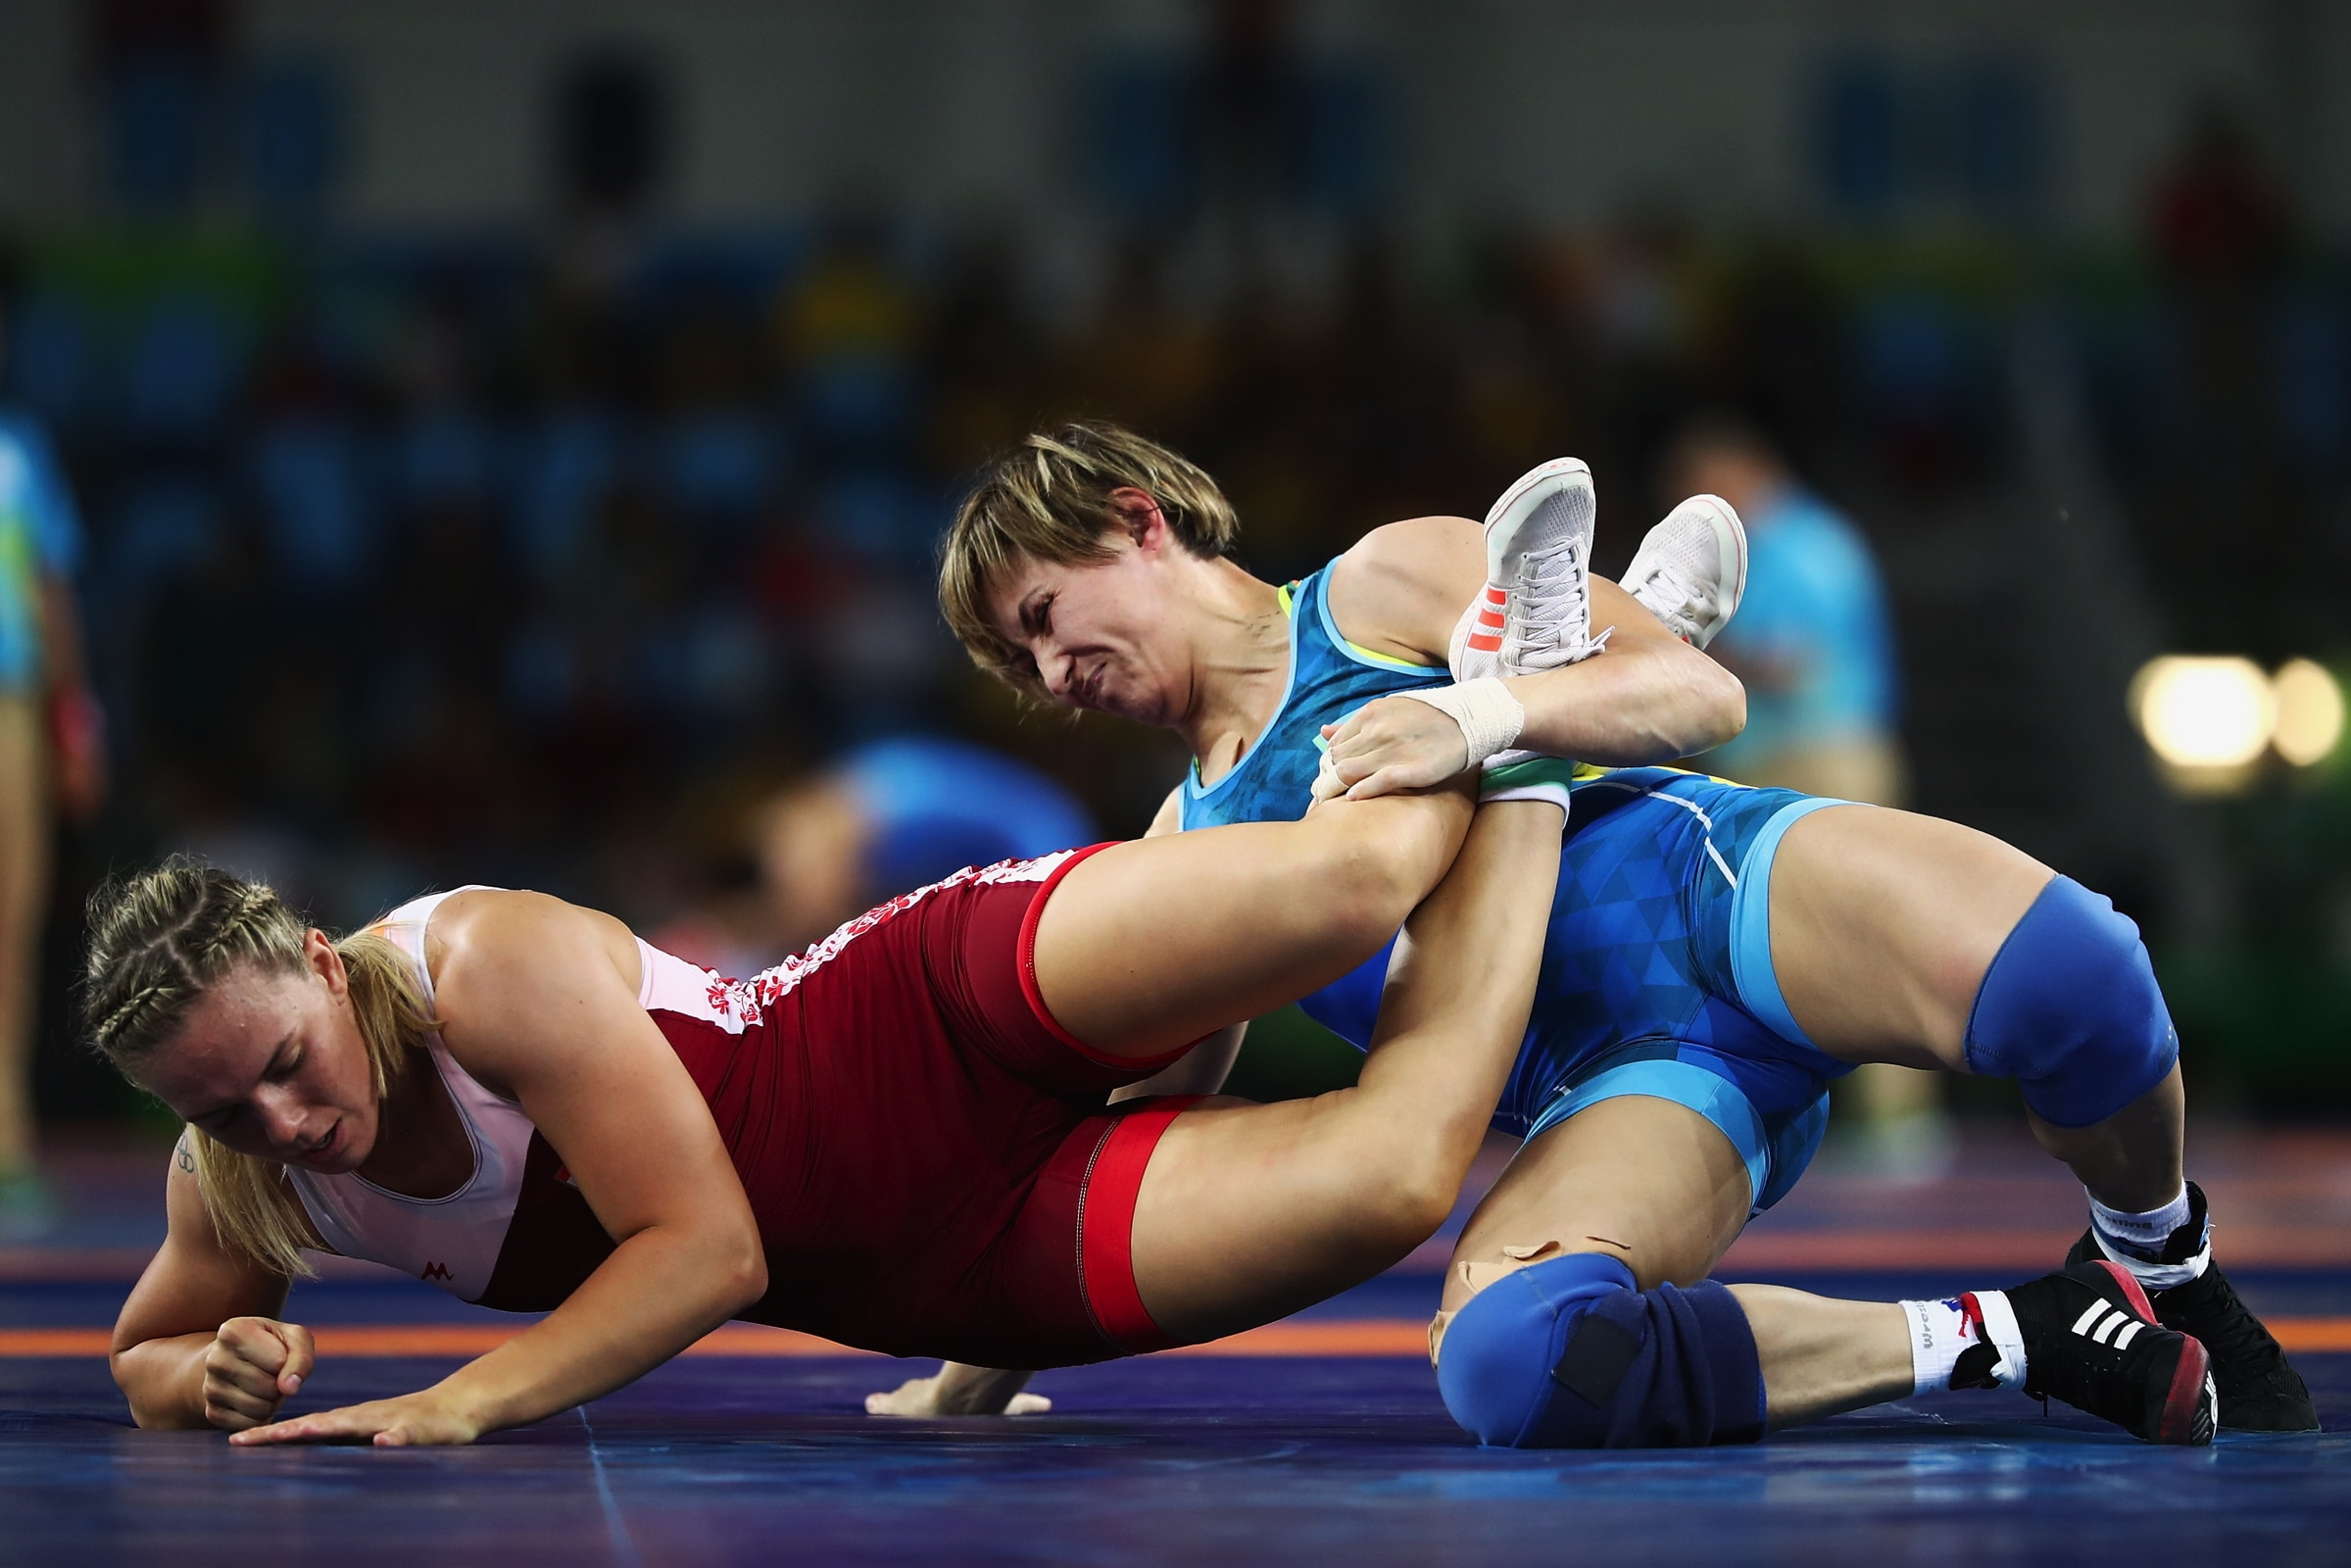 Wrestling Freestyle - Women's -75kg